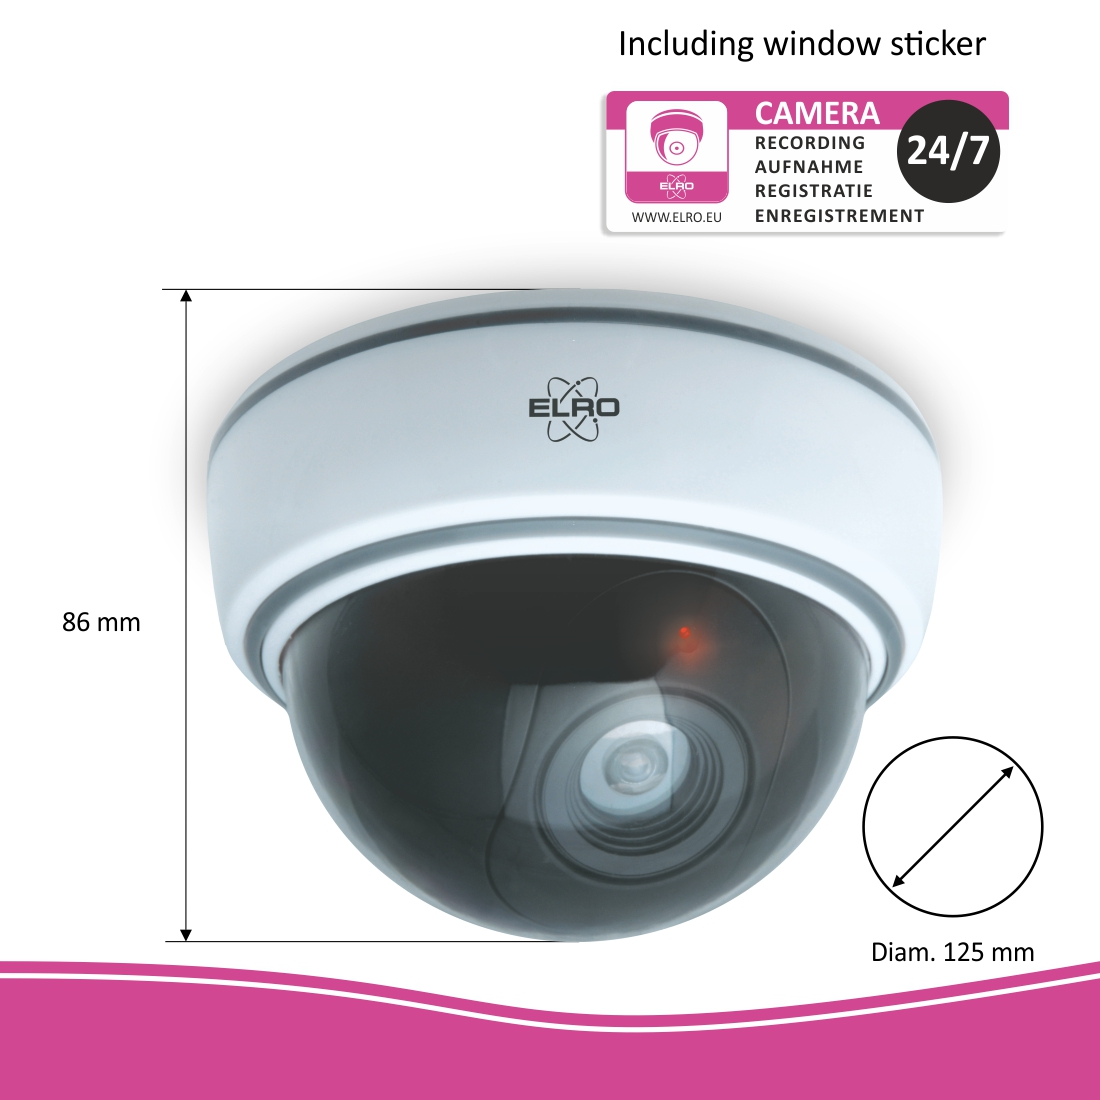 ELRO indoor dummy dome camera